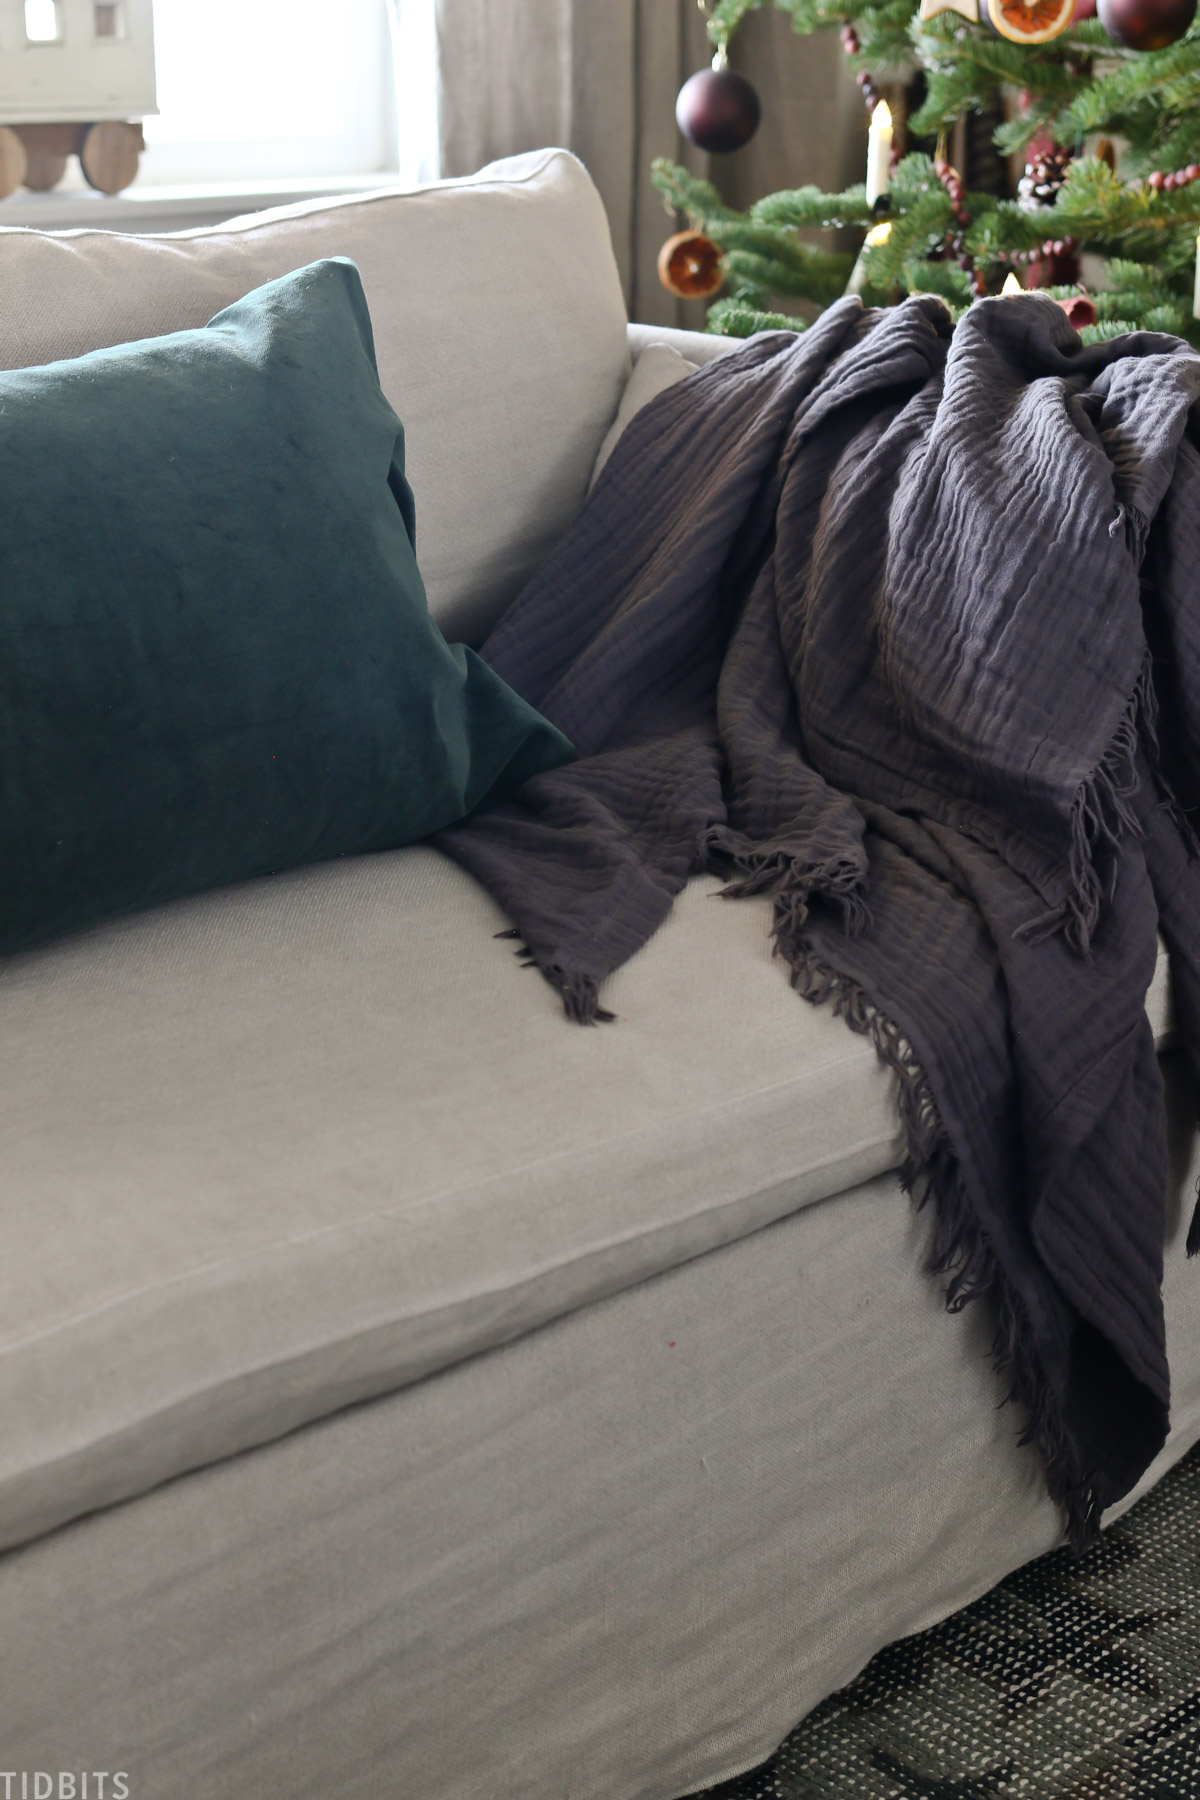 throw blanket and pillow resting on a living room couch